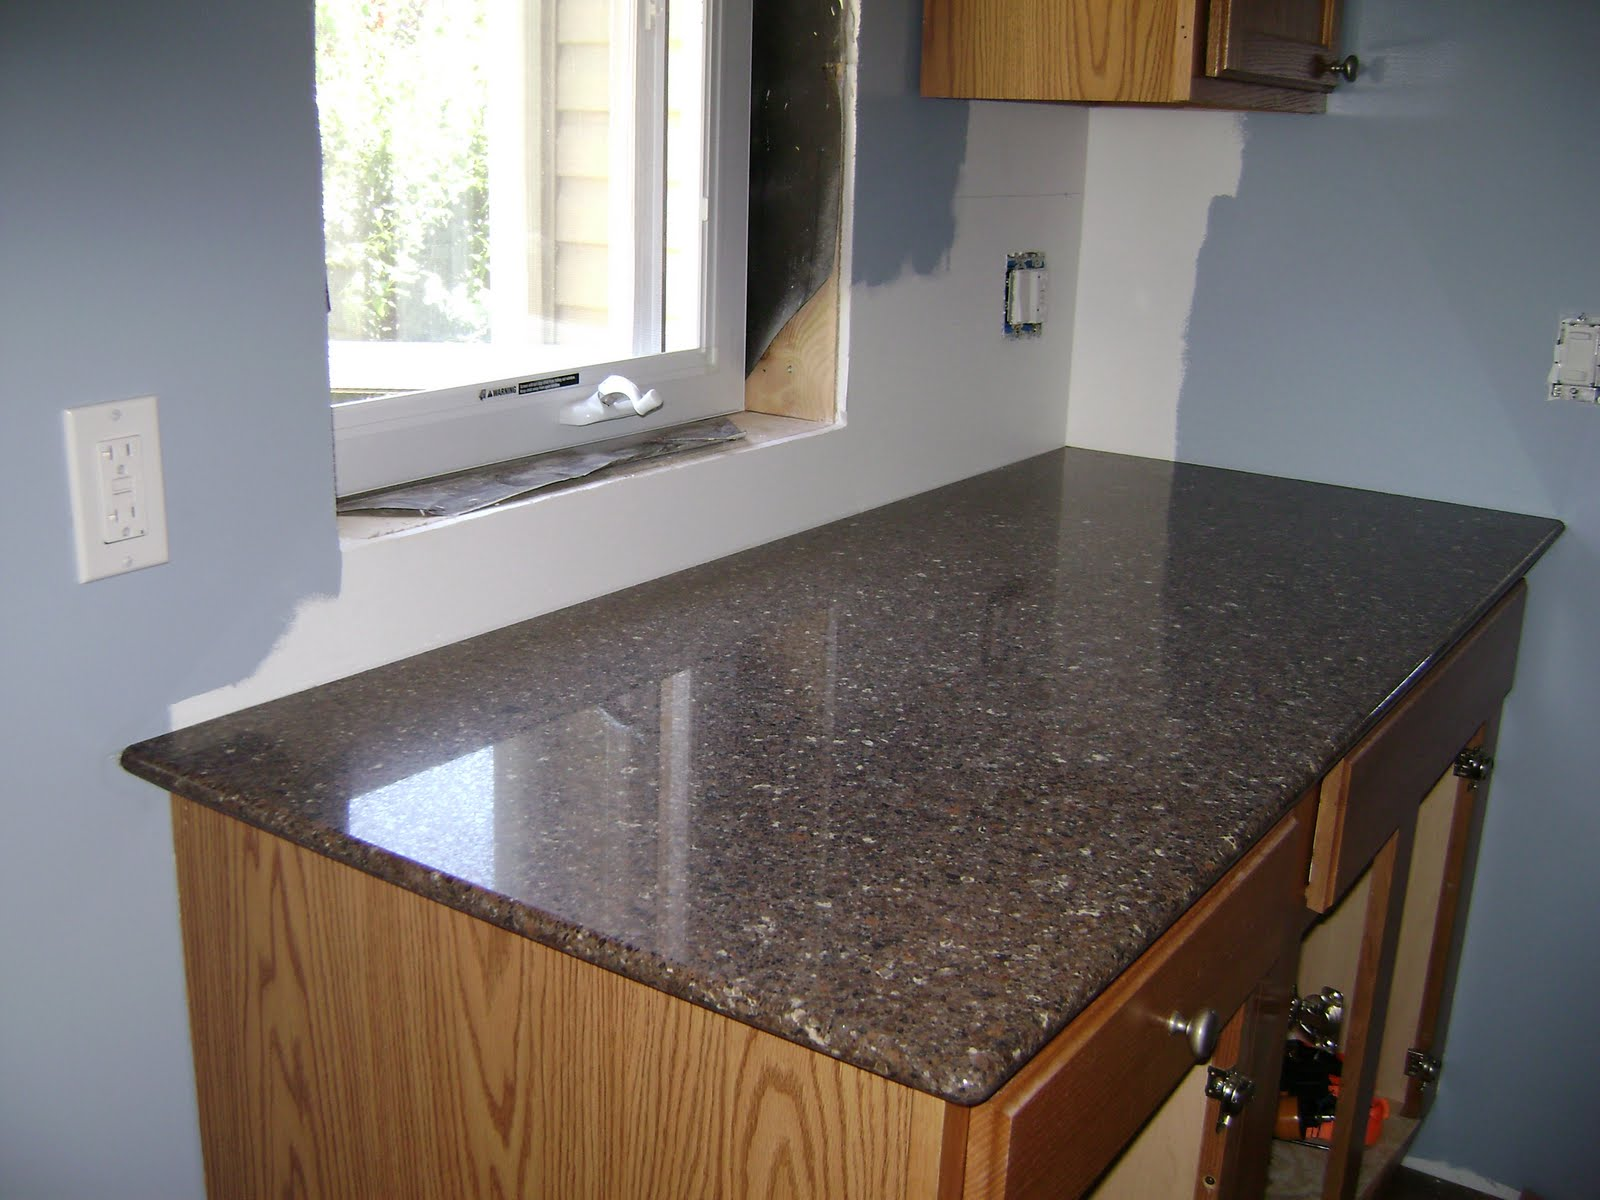 Updating Countertops Installed Silestone Sierra Madre